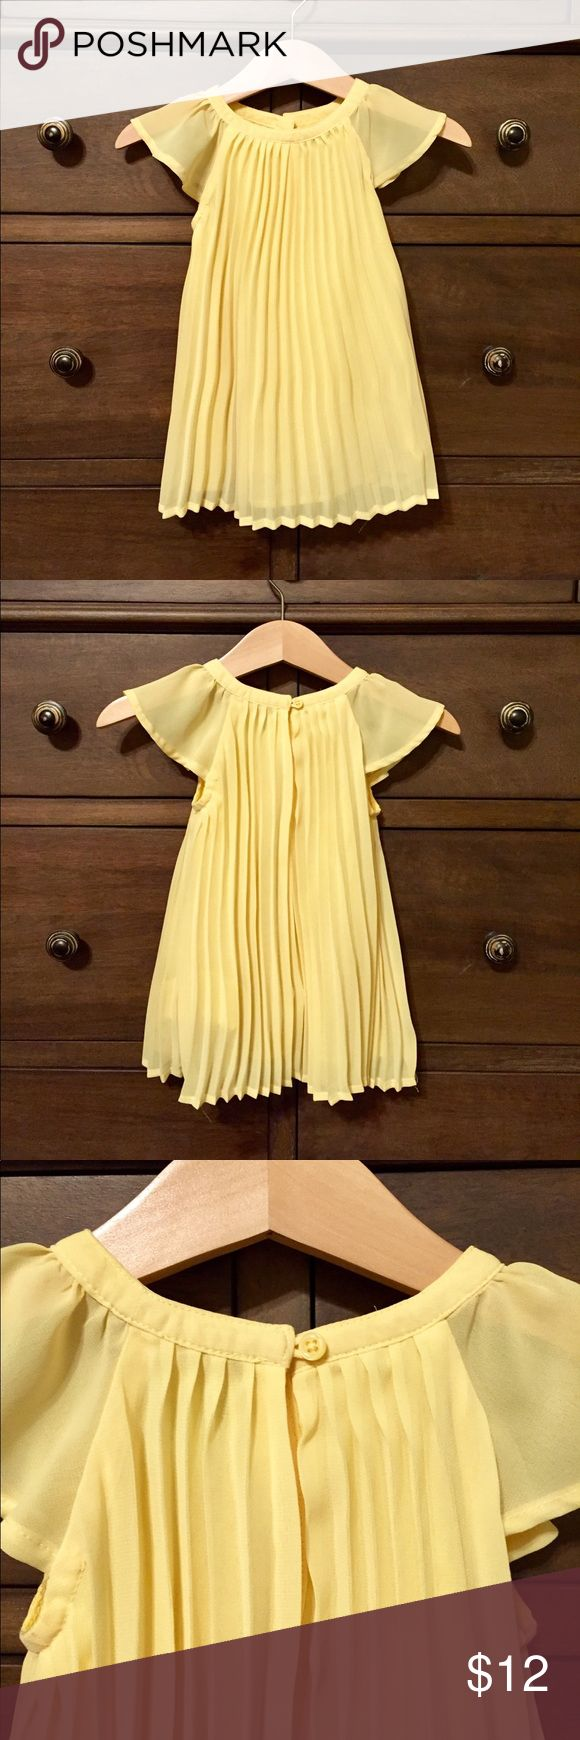 Baby Gap dress Super cute Baby Gap dress! Butter yellow in color with adorable flutter sleeves. Perfect for spring! Excellent condition! Comes with diaper cover as well. Size 6-12 months GAP Dresses